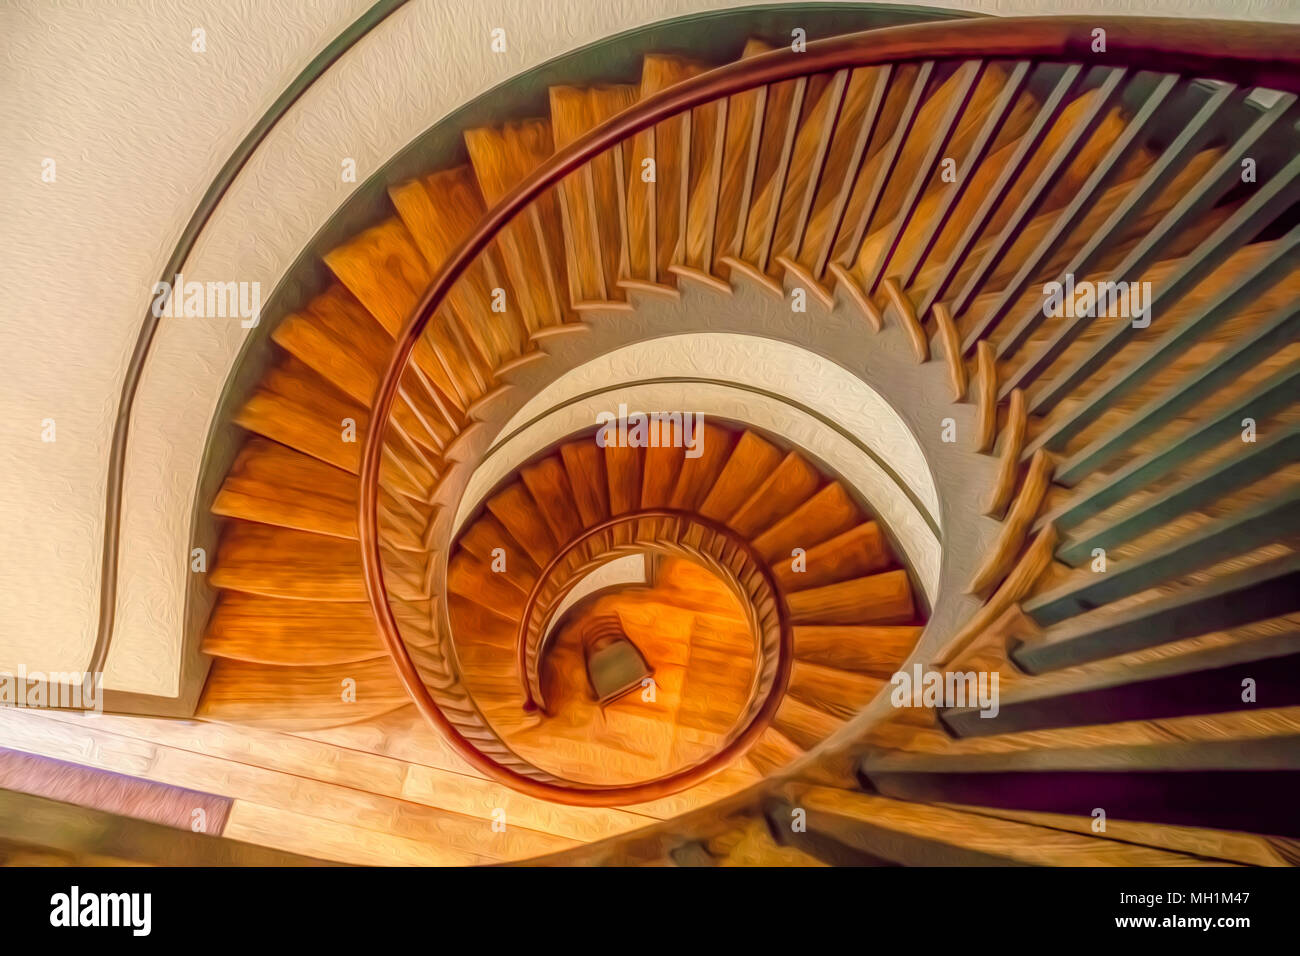 Top View Of Vintage Wooden Spiral Staircase, With Digital Oil Painting  Effect